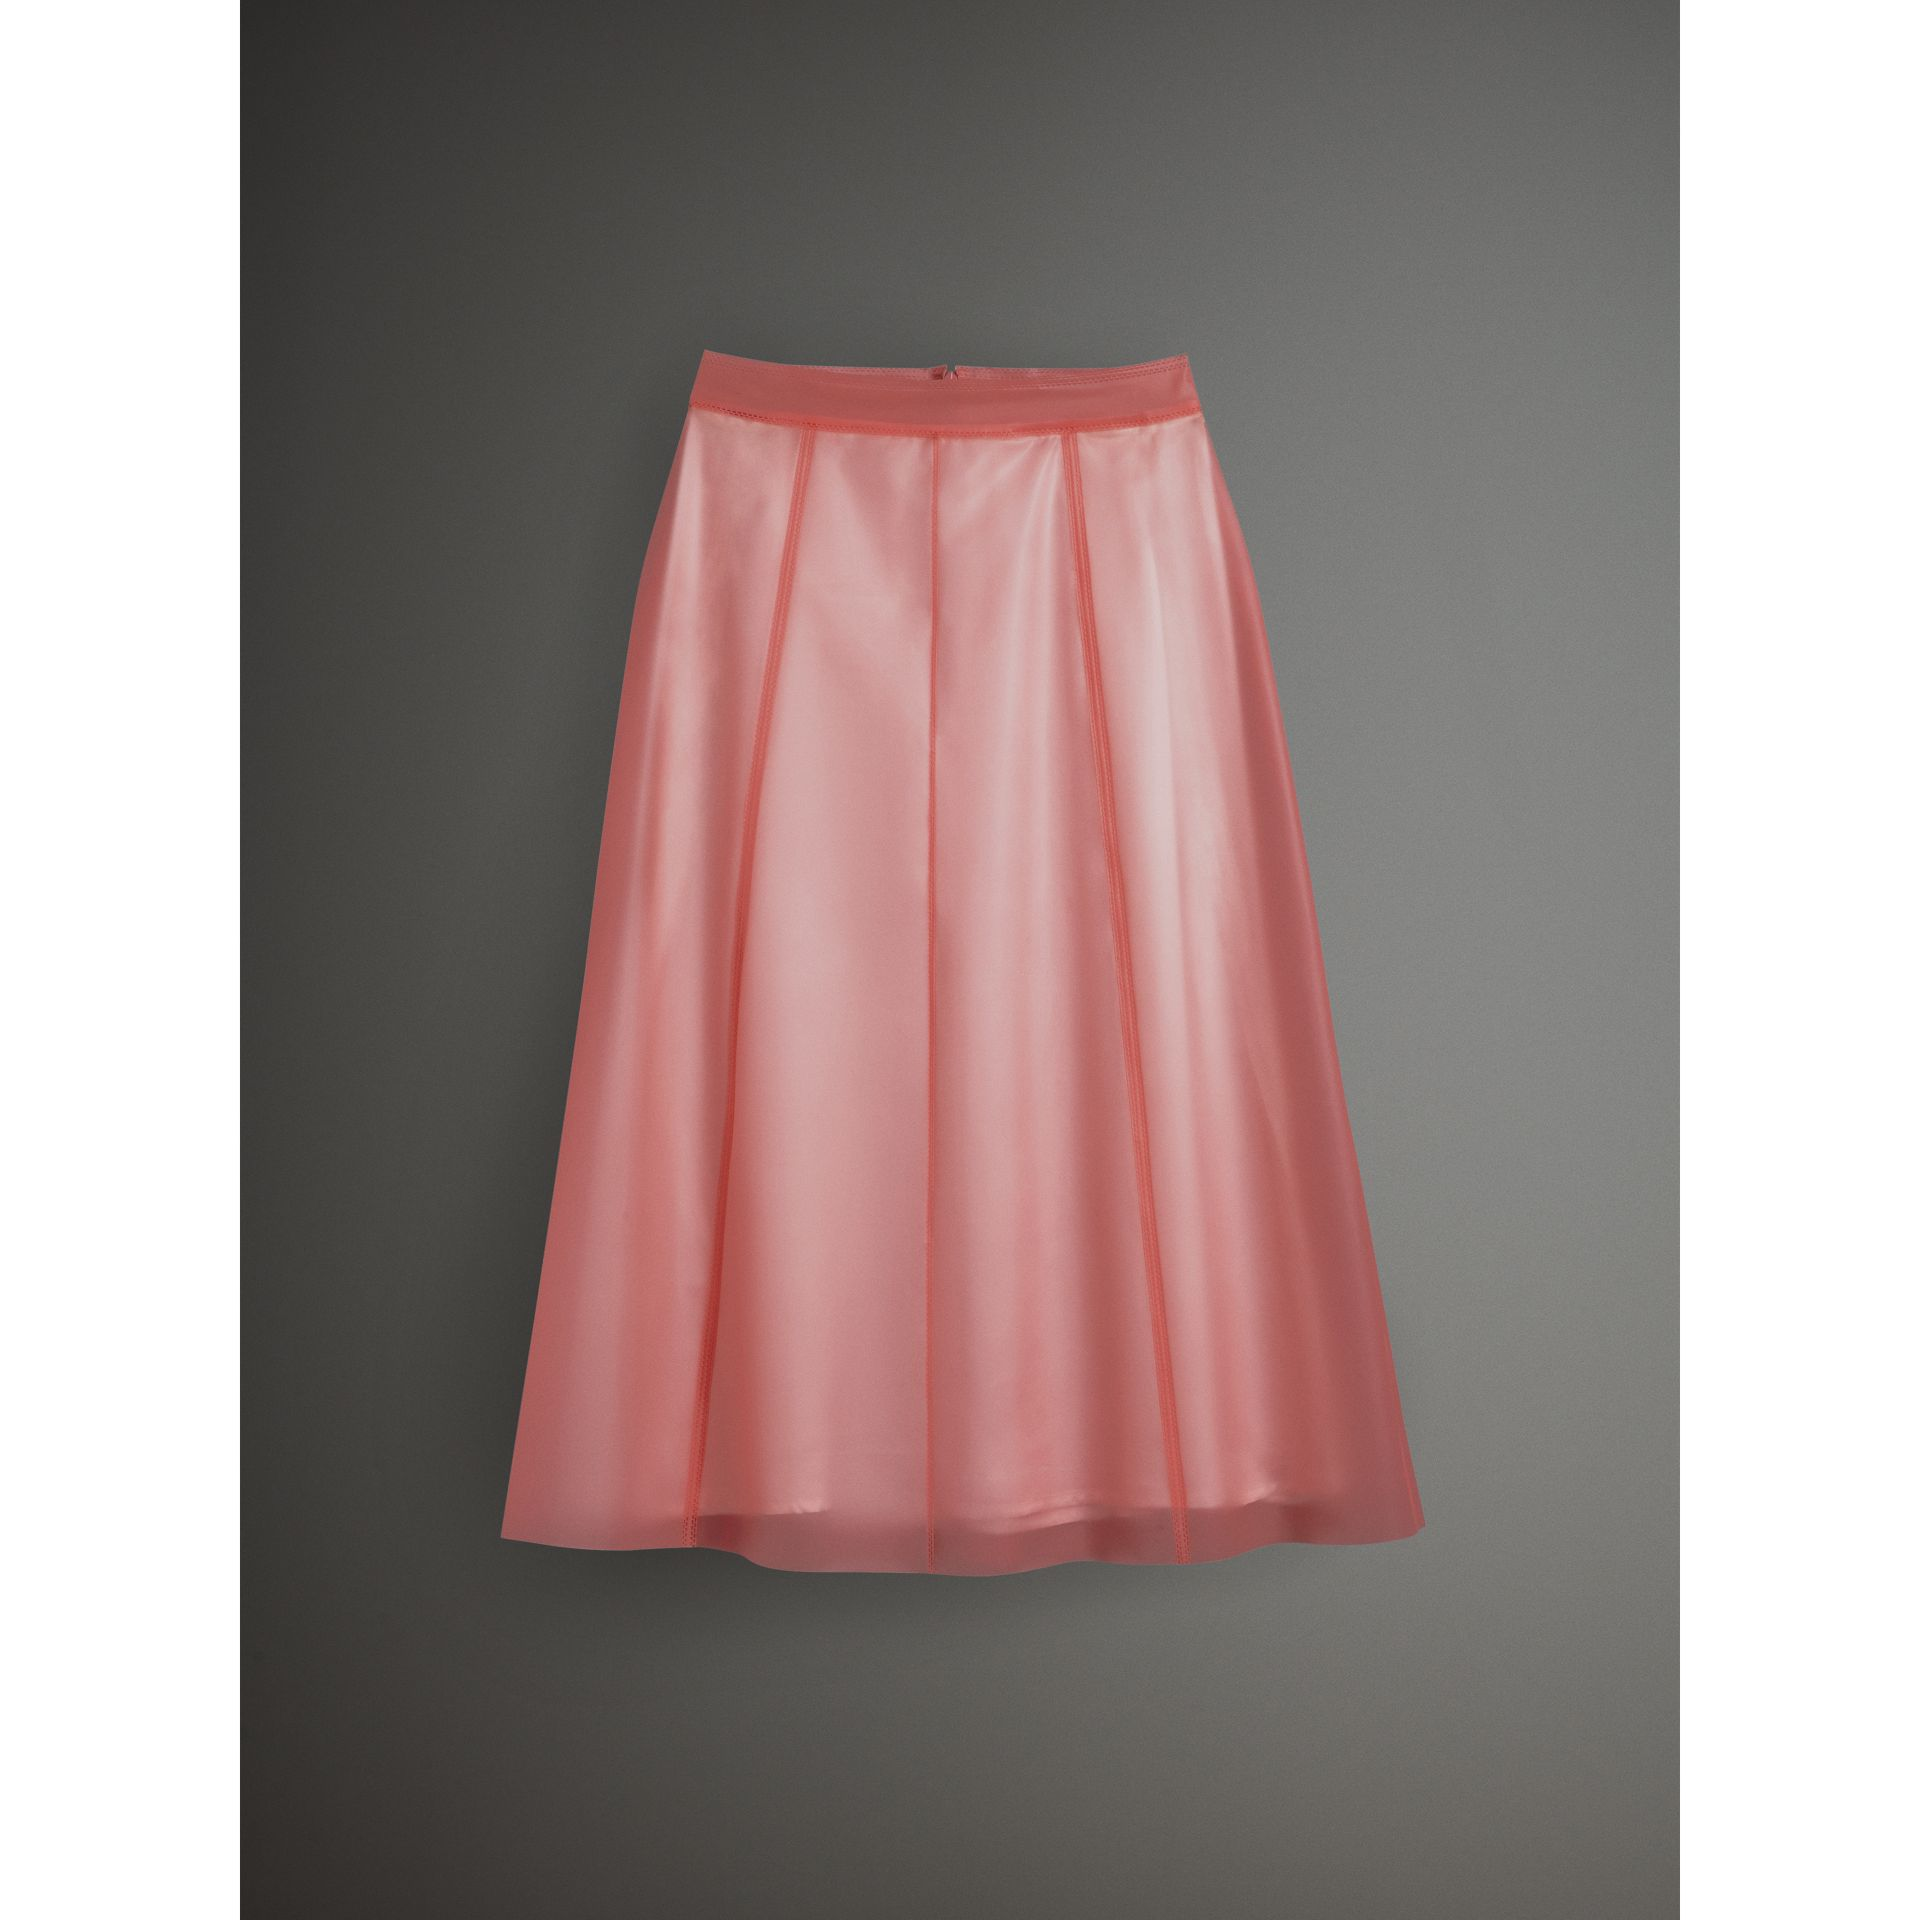 Silk-lined Plastic A-line Skirt in Rose Pink - Women | Burberry - gallery image 3